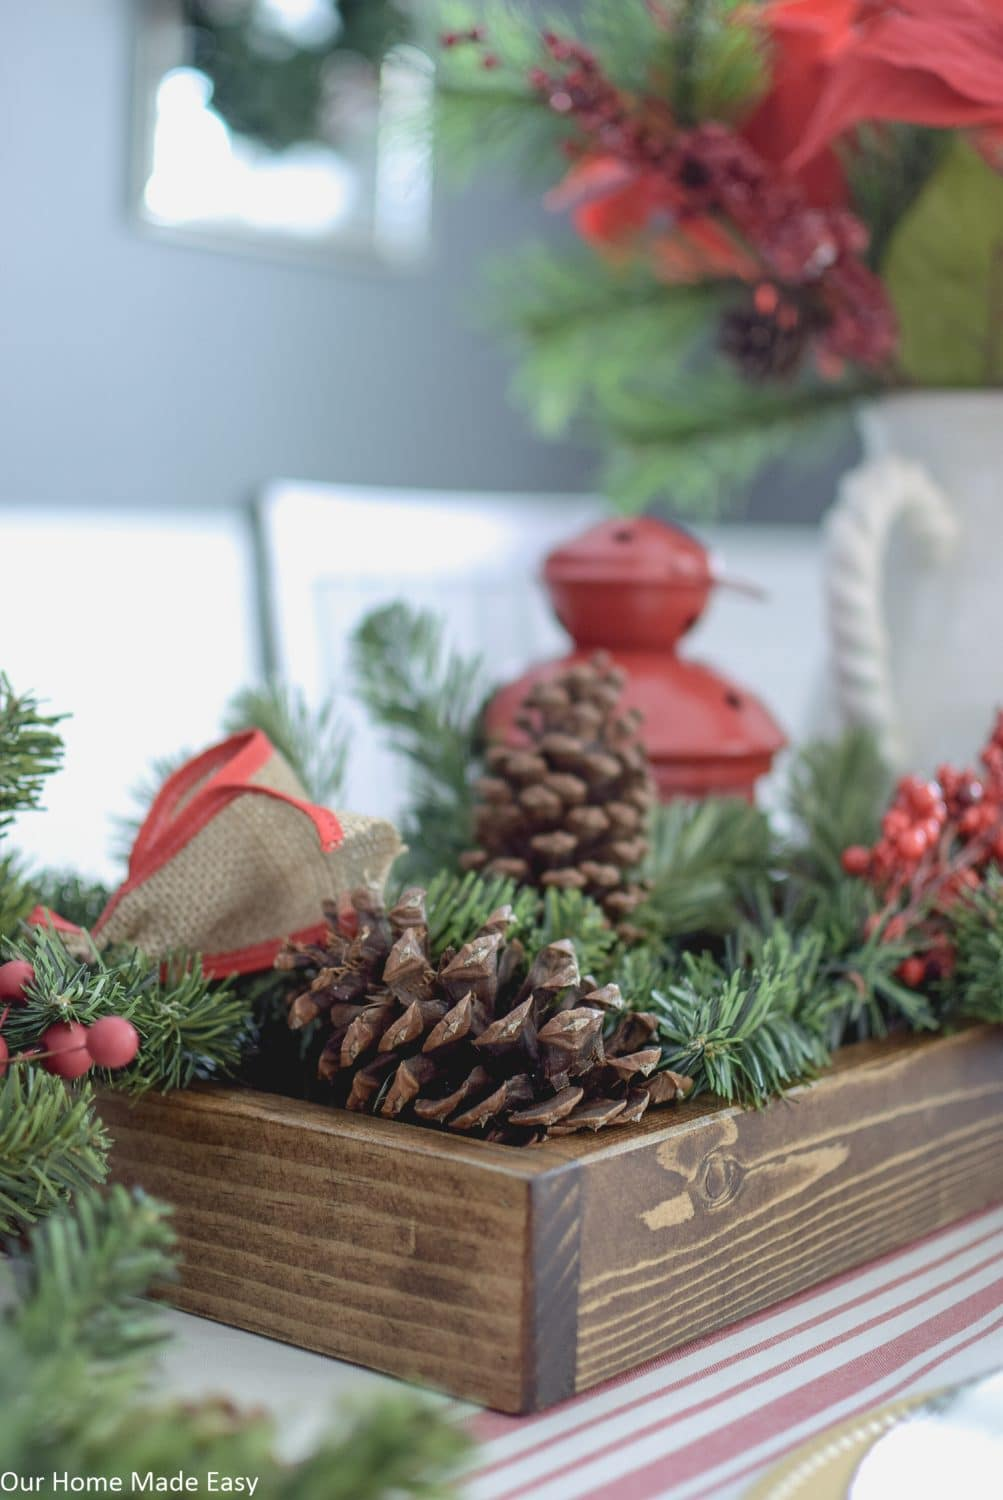 The holidays are about joy and family, not stress. Make your life easier during the holidays by taking the stress out of planning